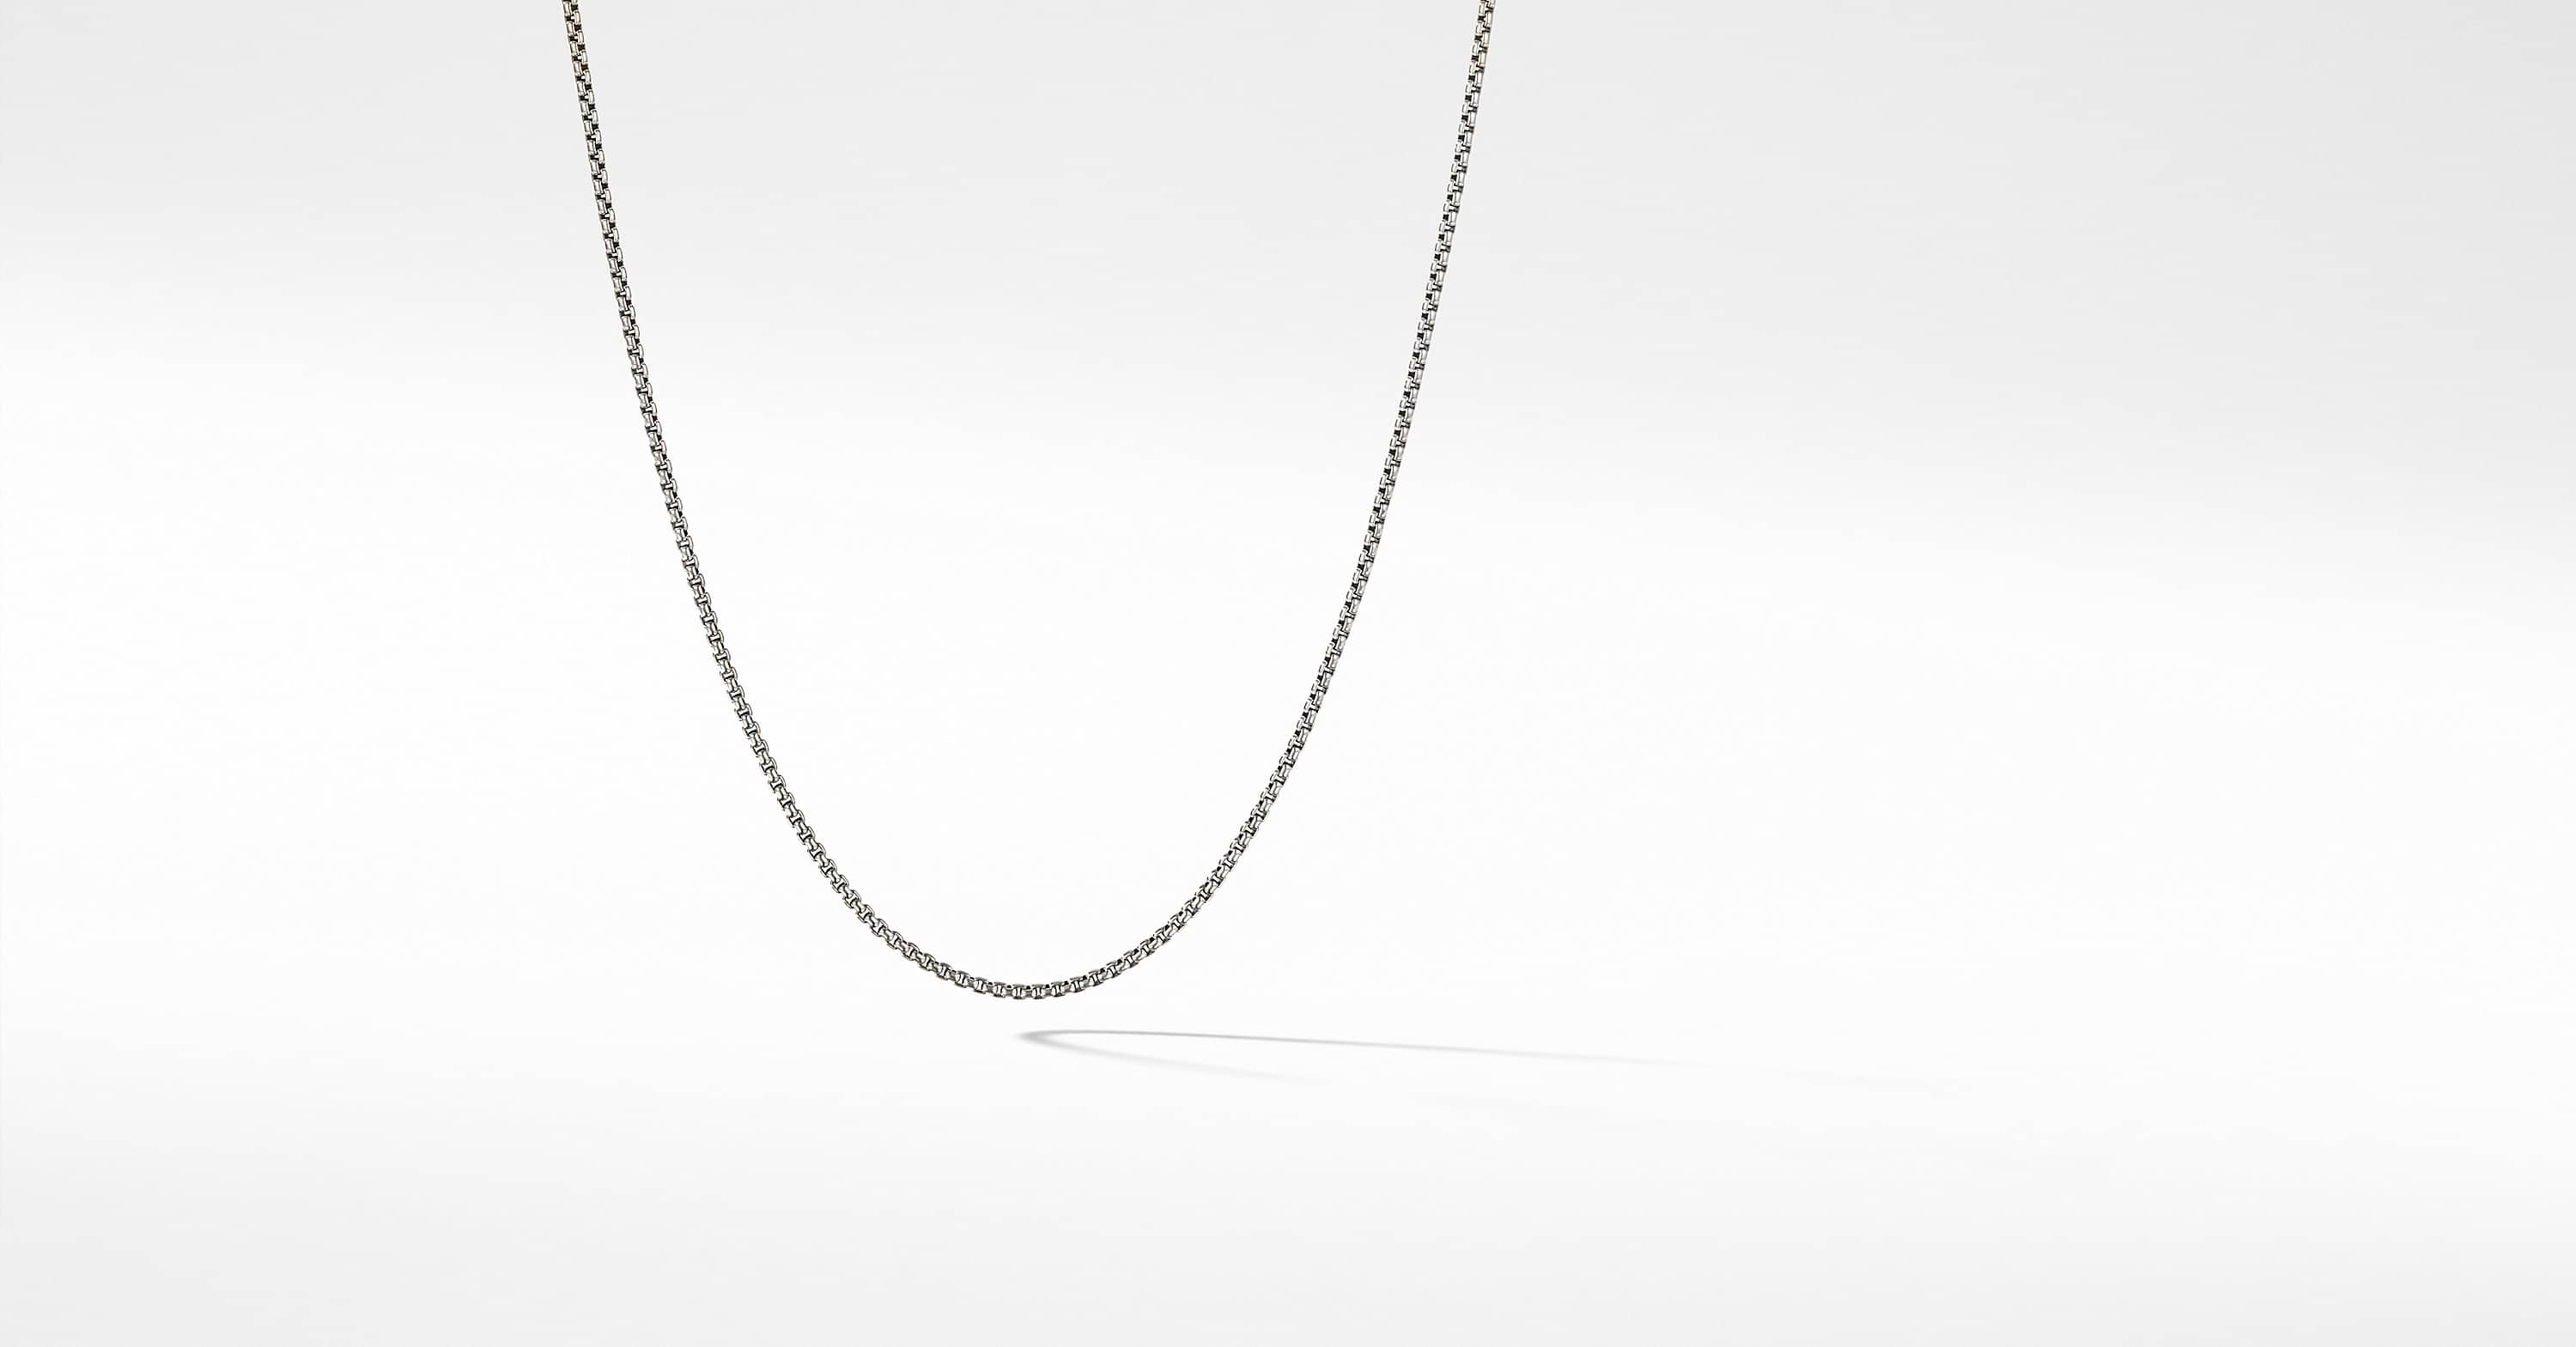 Box Chain Necklace with an Accent of 14K Gold, 1.7mm